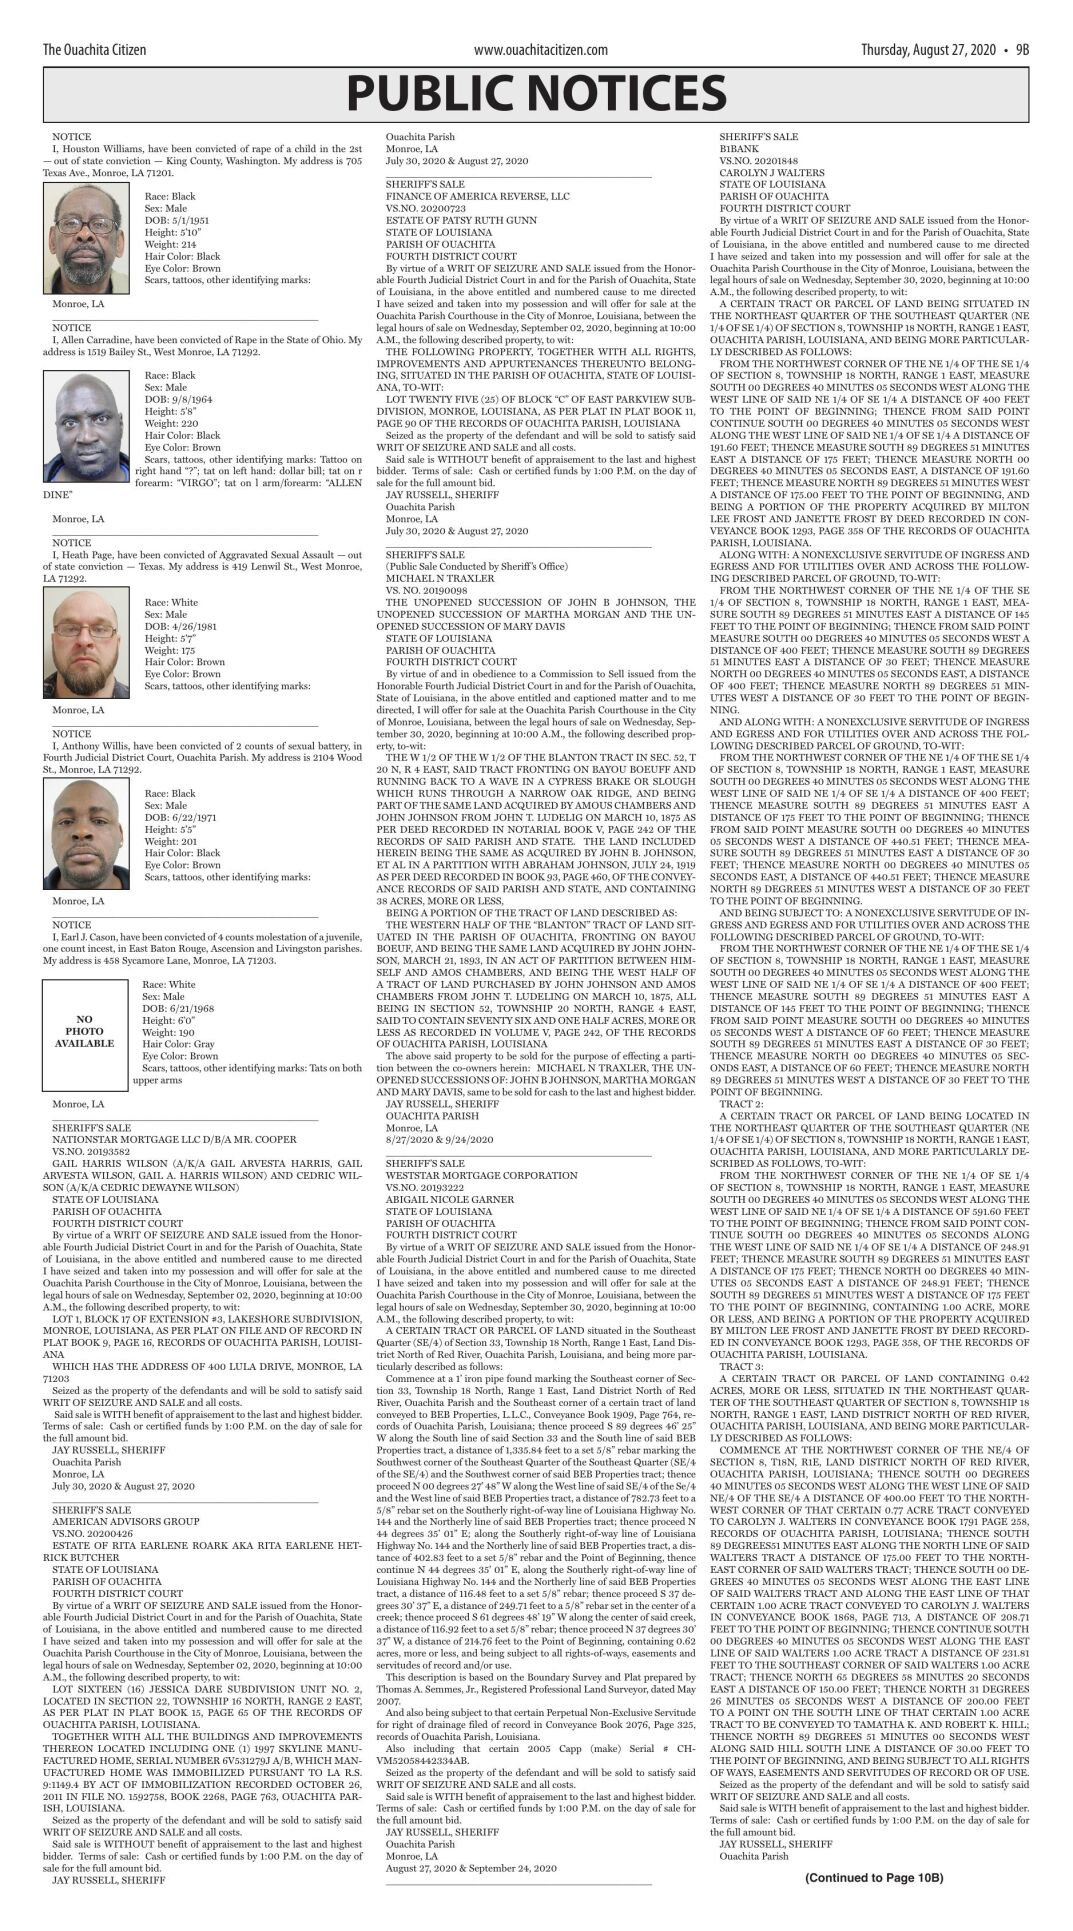 Aug. 27, 2020 Public Notices, click to download pages